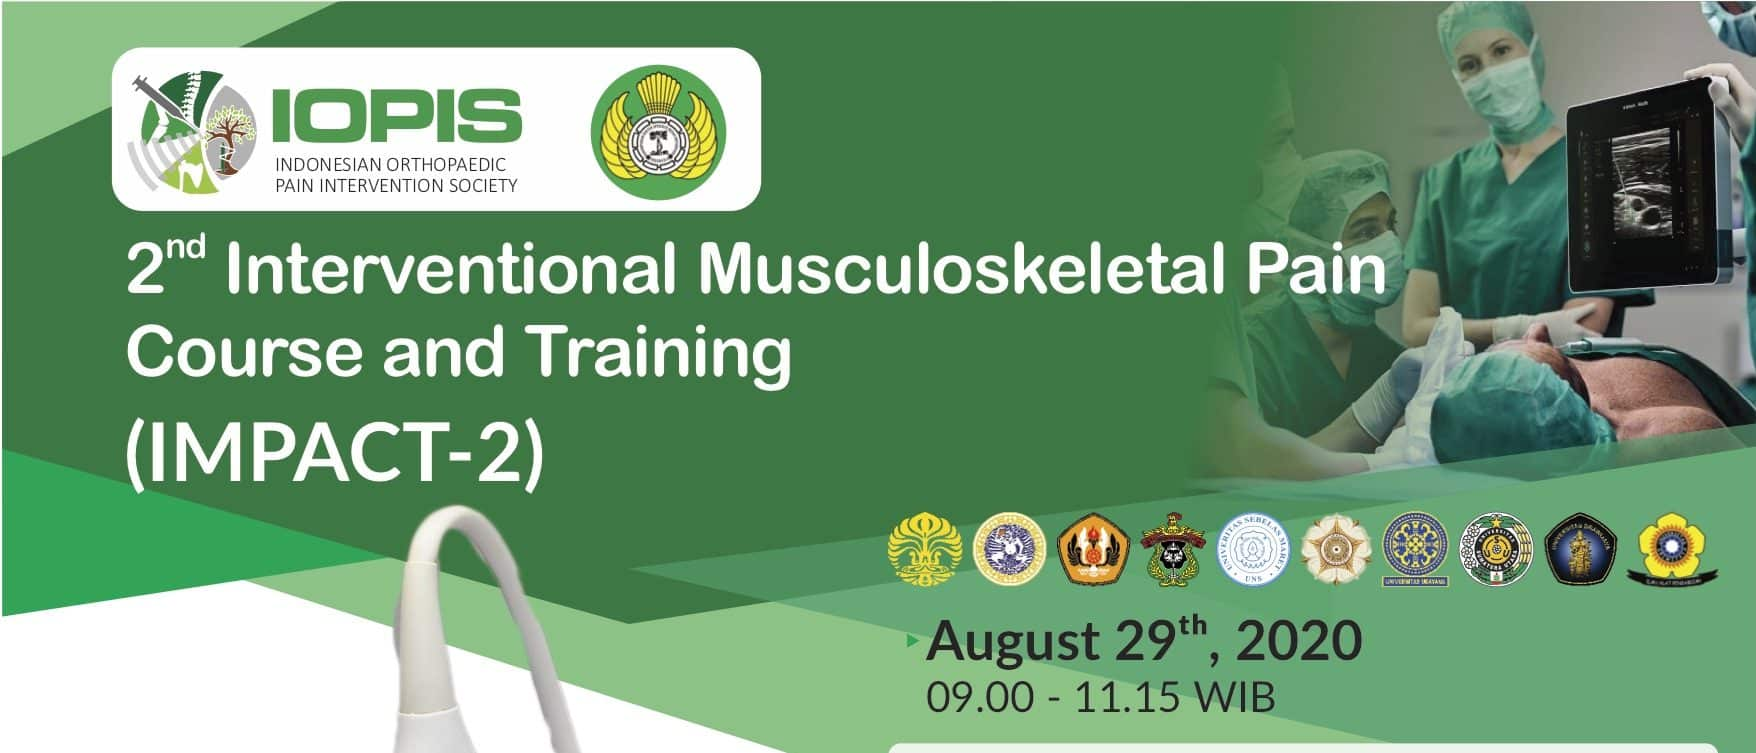 2nd Interventional Musculoskeletal Pain Course and Training (IMPACT-2)